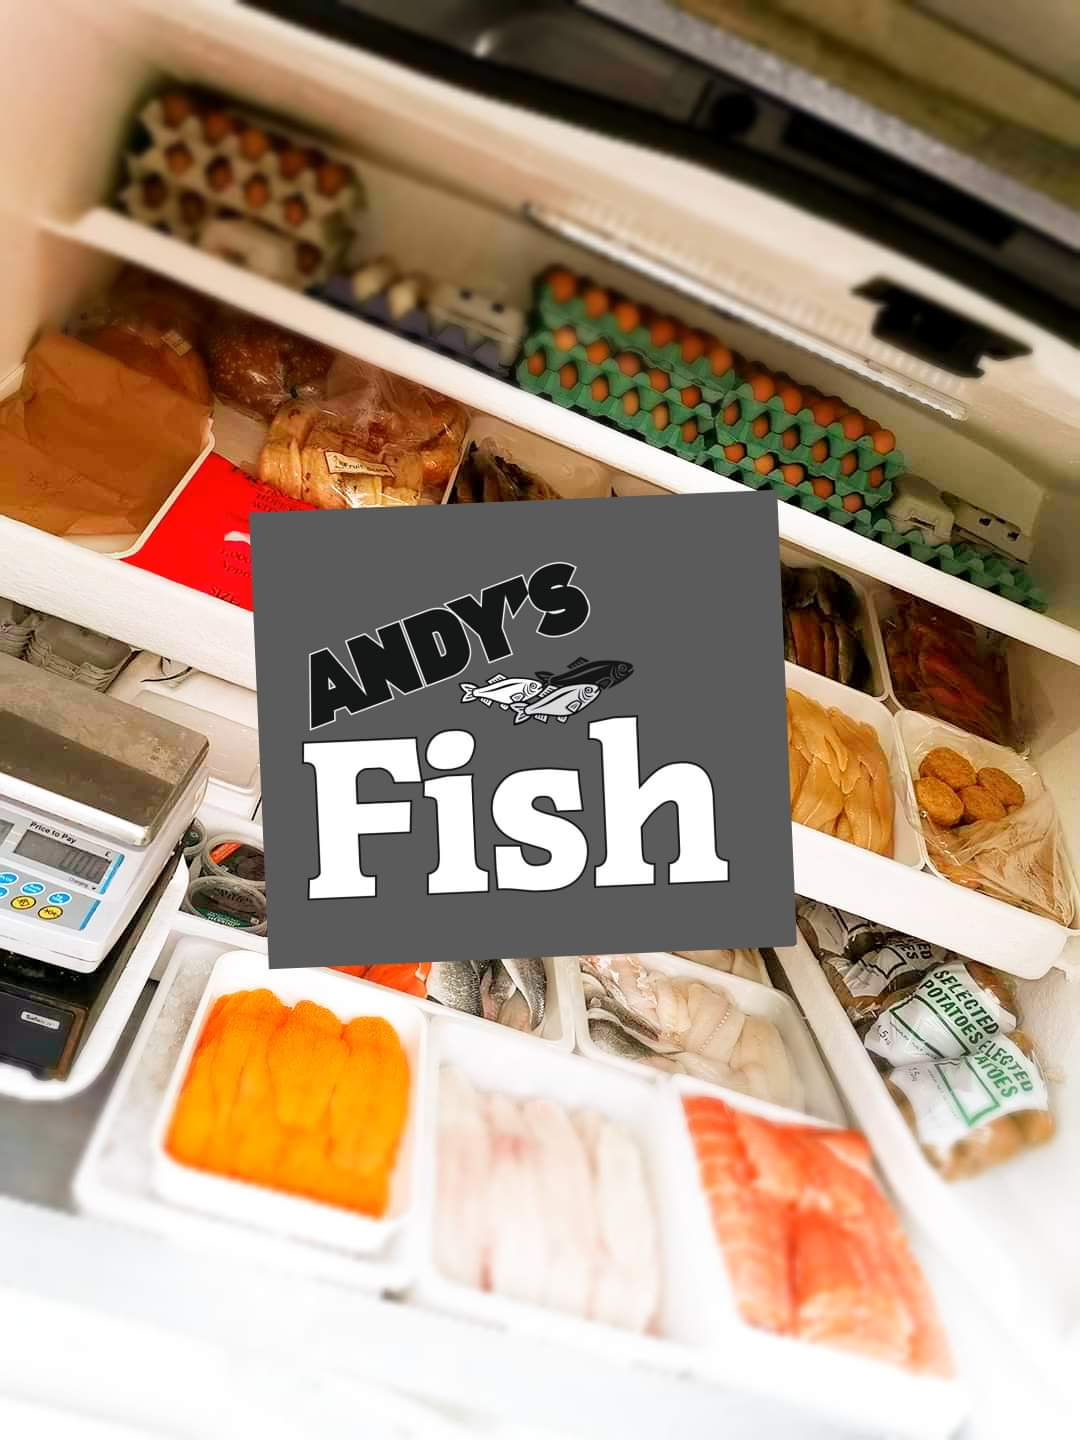 Andy's Fish